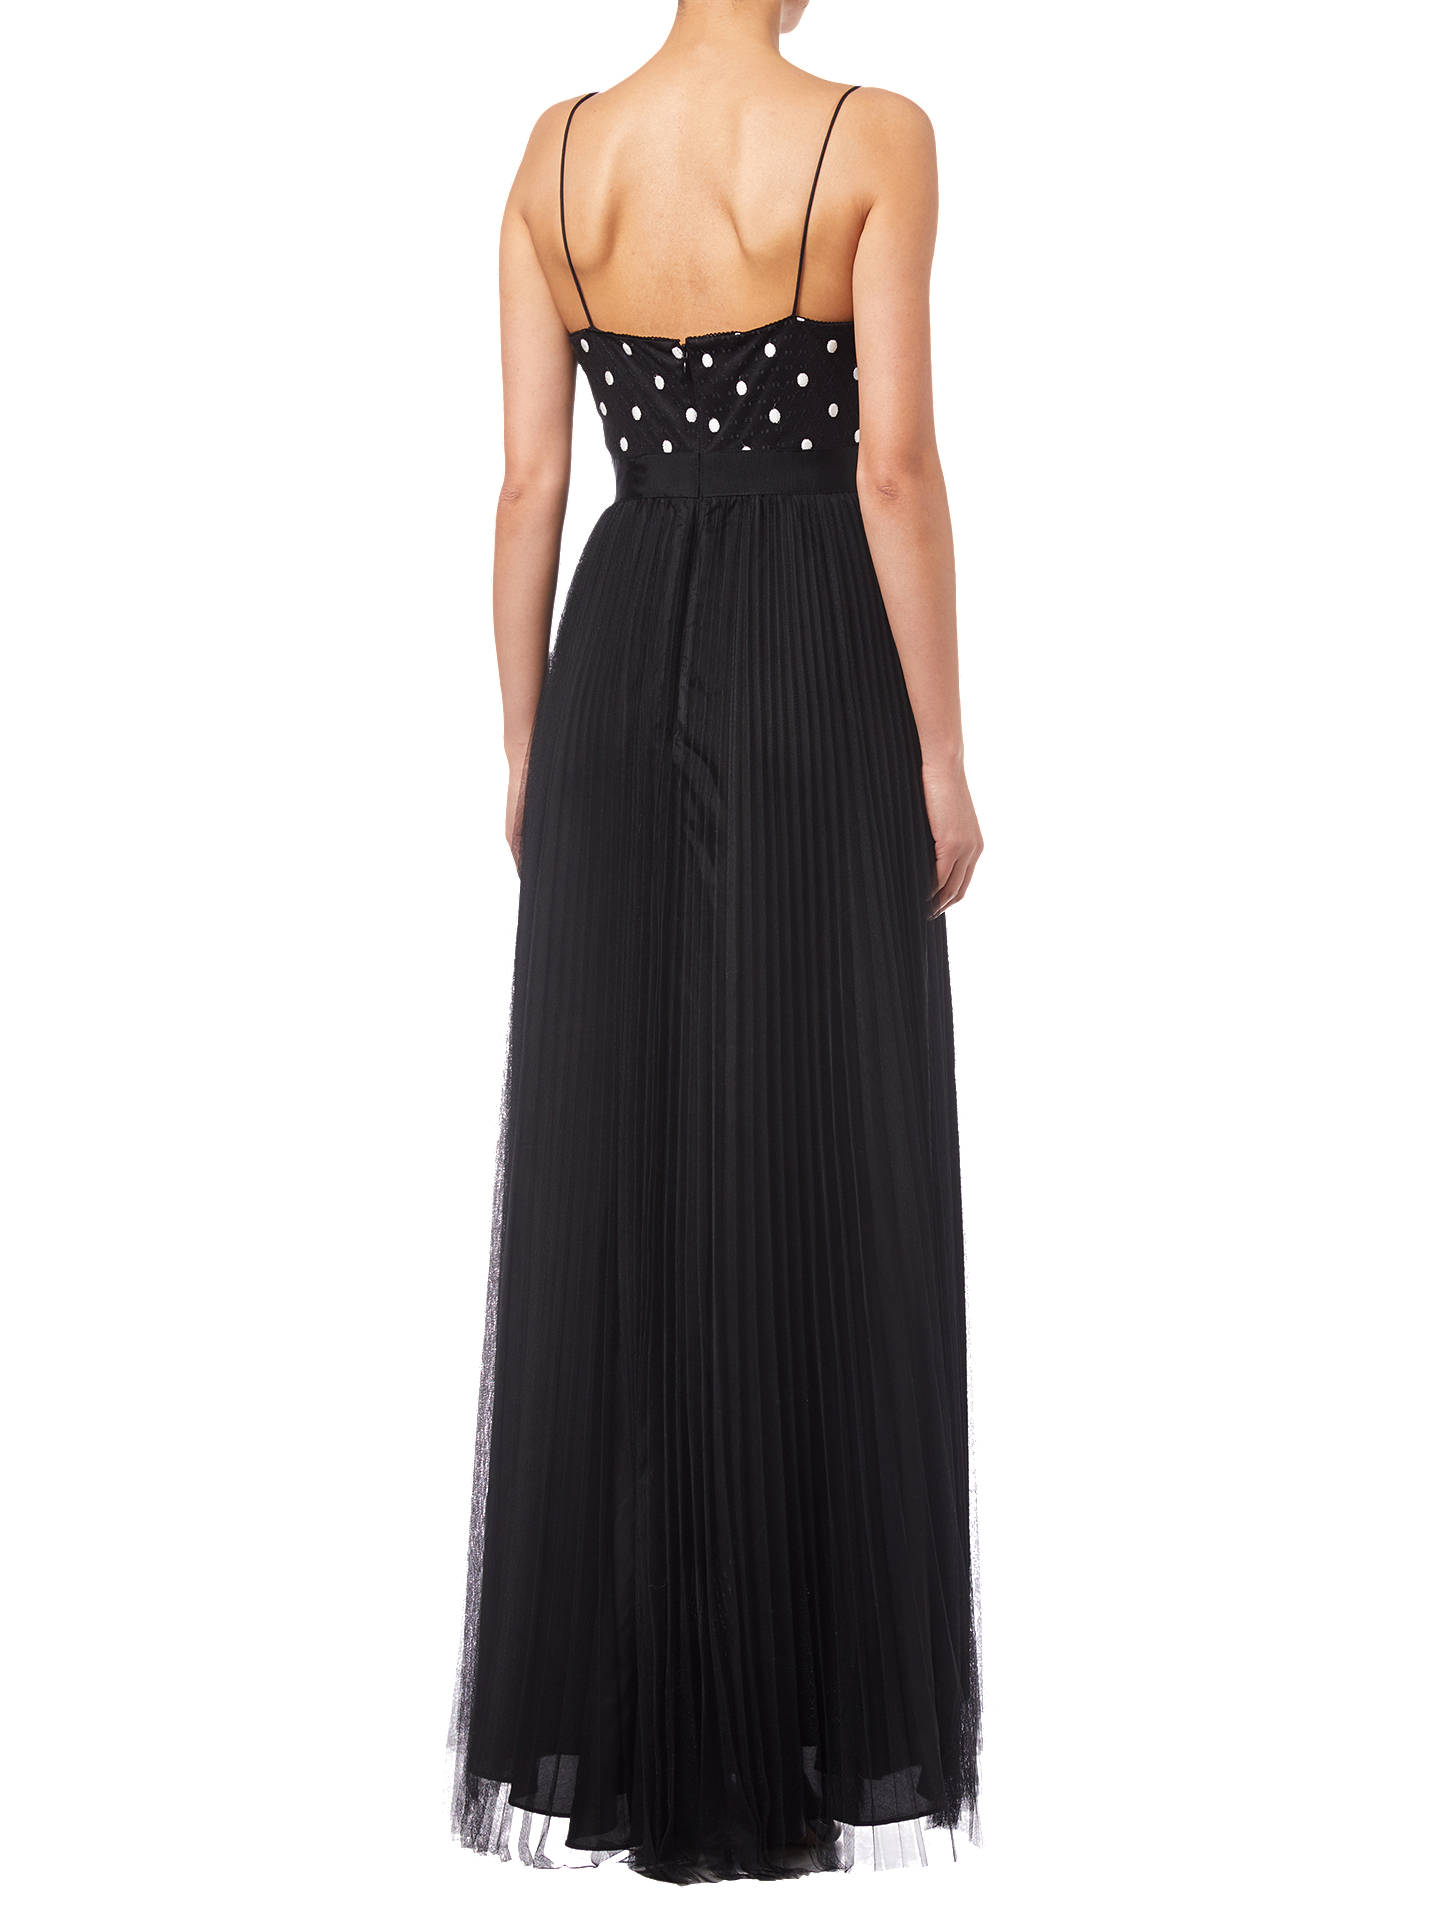 Buy Adrianna Papell Pleated Tulle Dress, Black/White, 14 Online at johnlewis.com